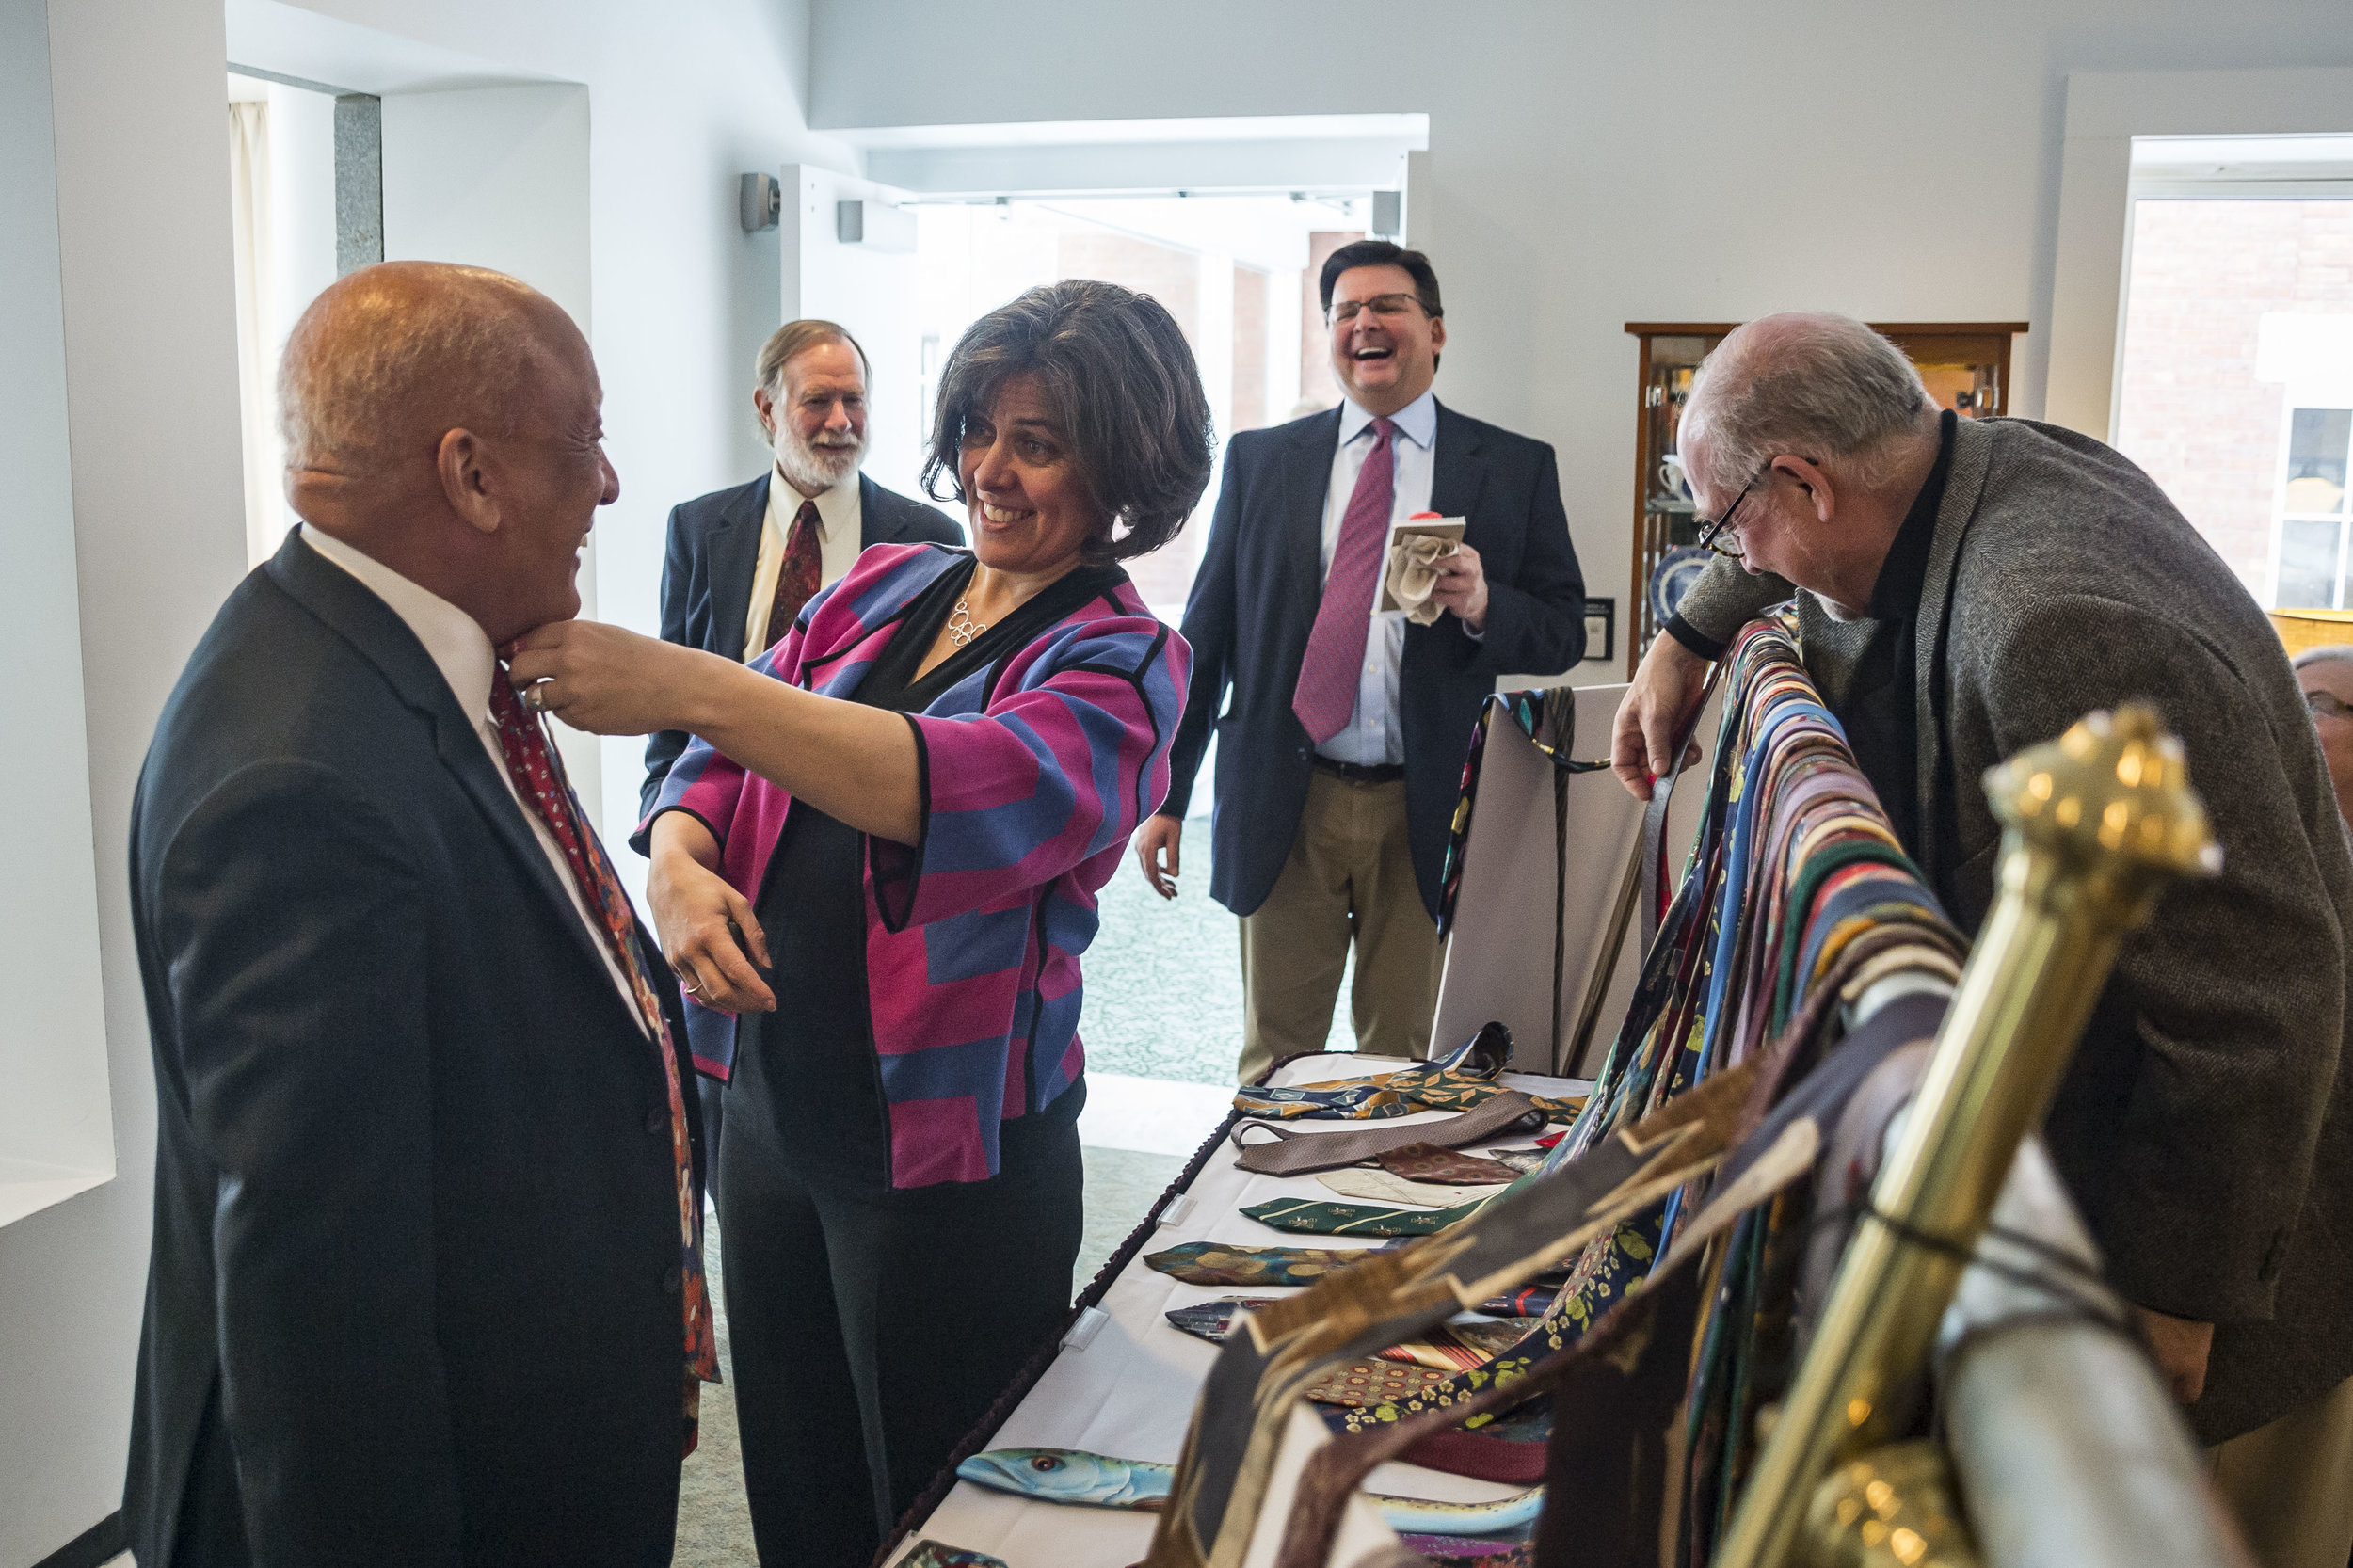 On April 17th, 2018, Vermont Speaker of the House Mitzi Johnson (pictured center) samples one of retiring representative David Sharpe's (D-Addison 4, pictured left rear) neckties on Senator Randy Brock (pictured left, R-Franklin). Sharpe is retiring at the conclusion of this year's session, and is selling numerous themed neckties he has worn throughout his legislative career to benefit Friends of the State House.